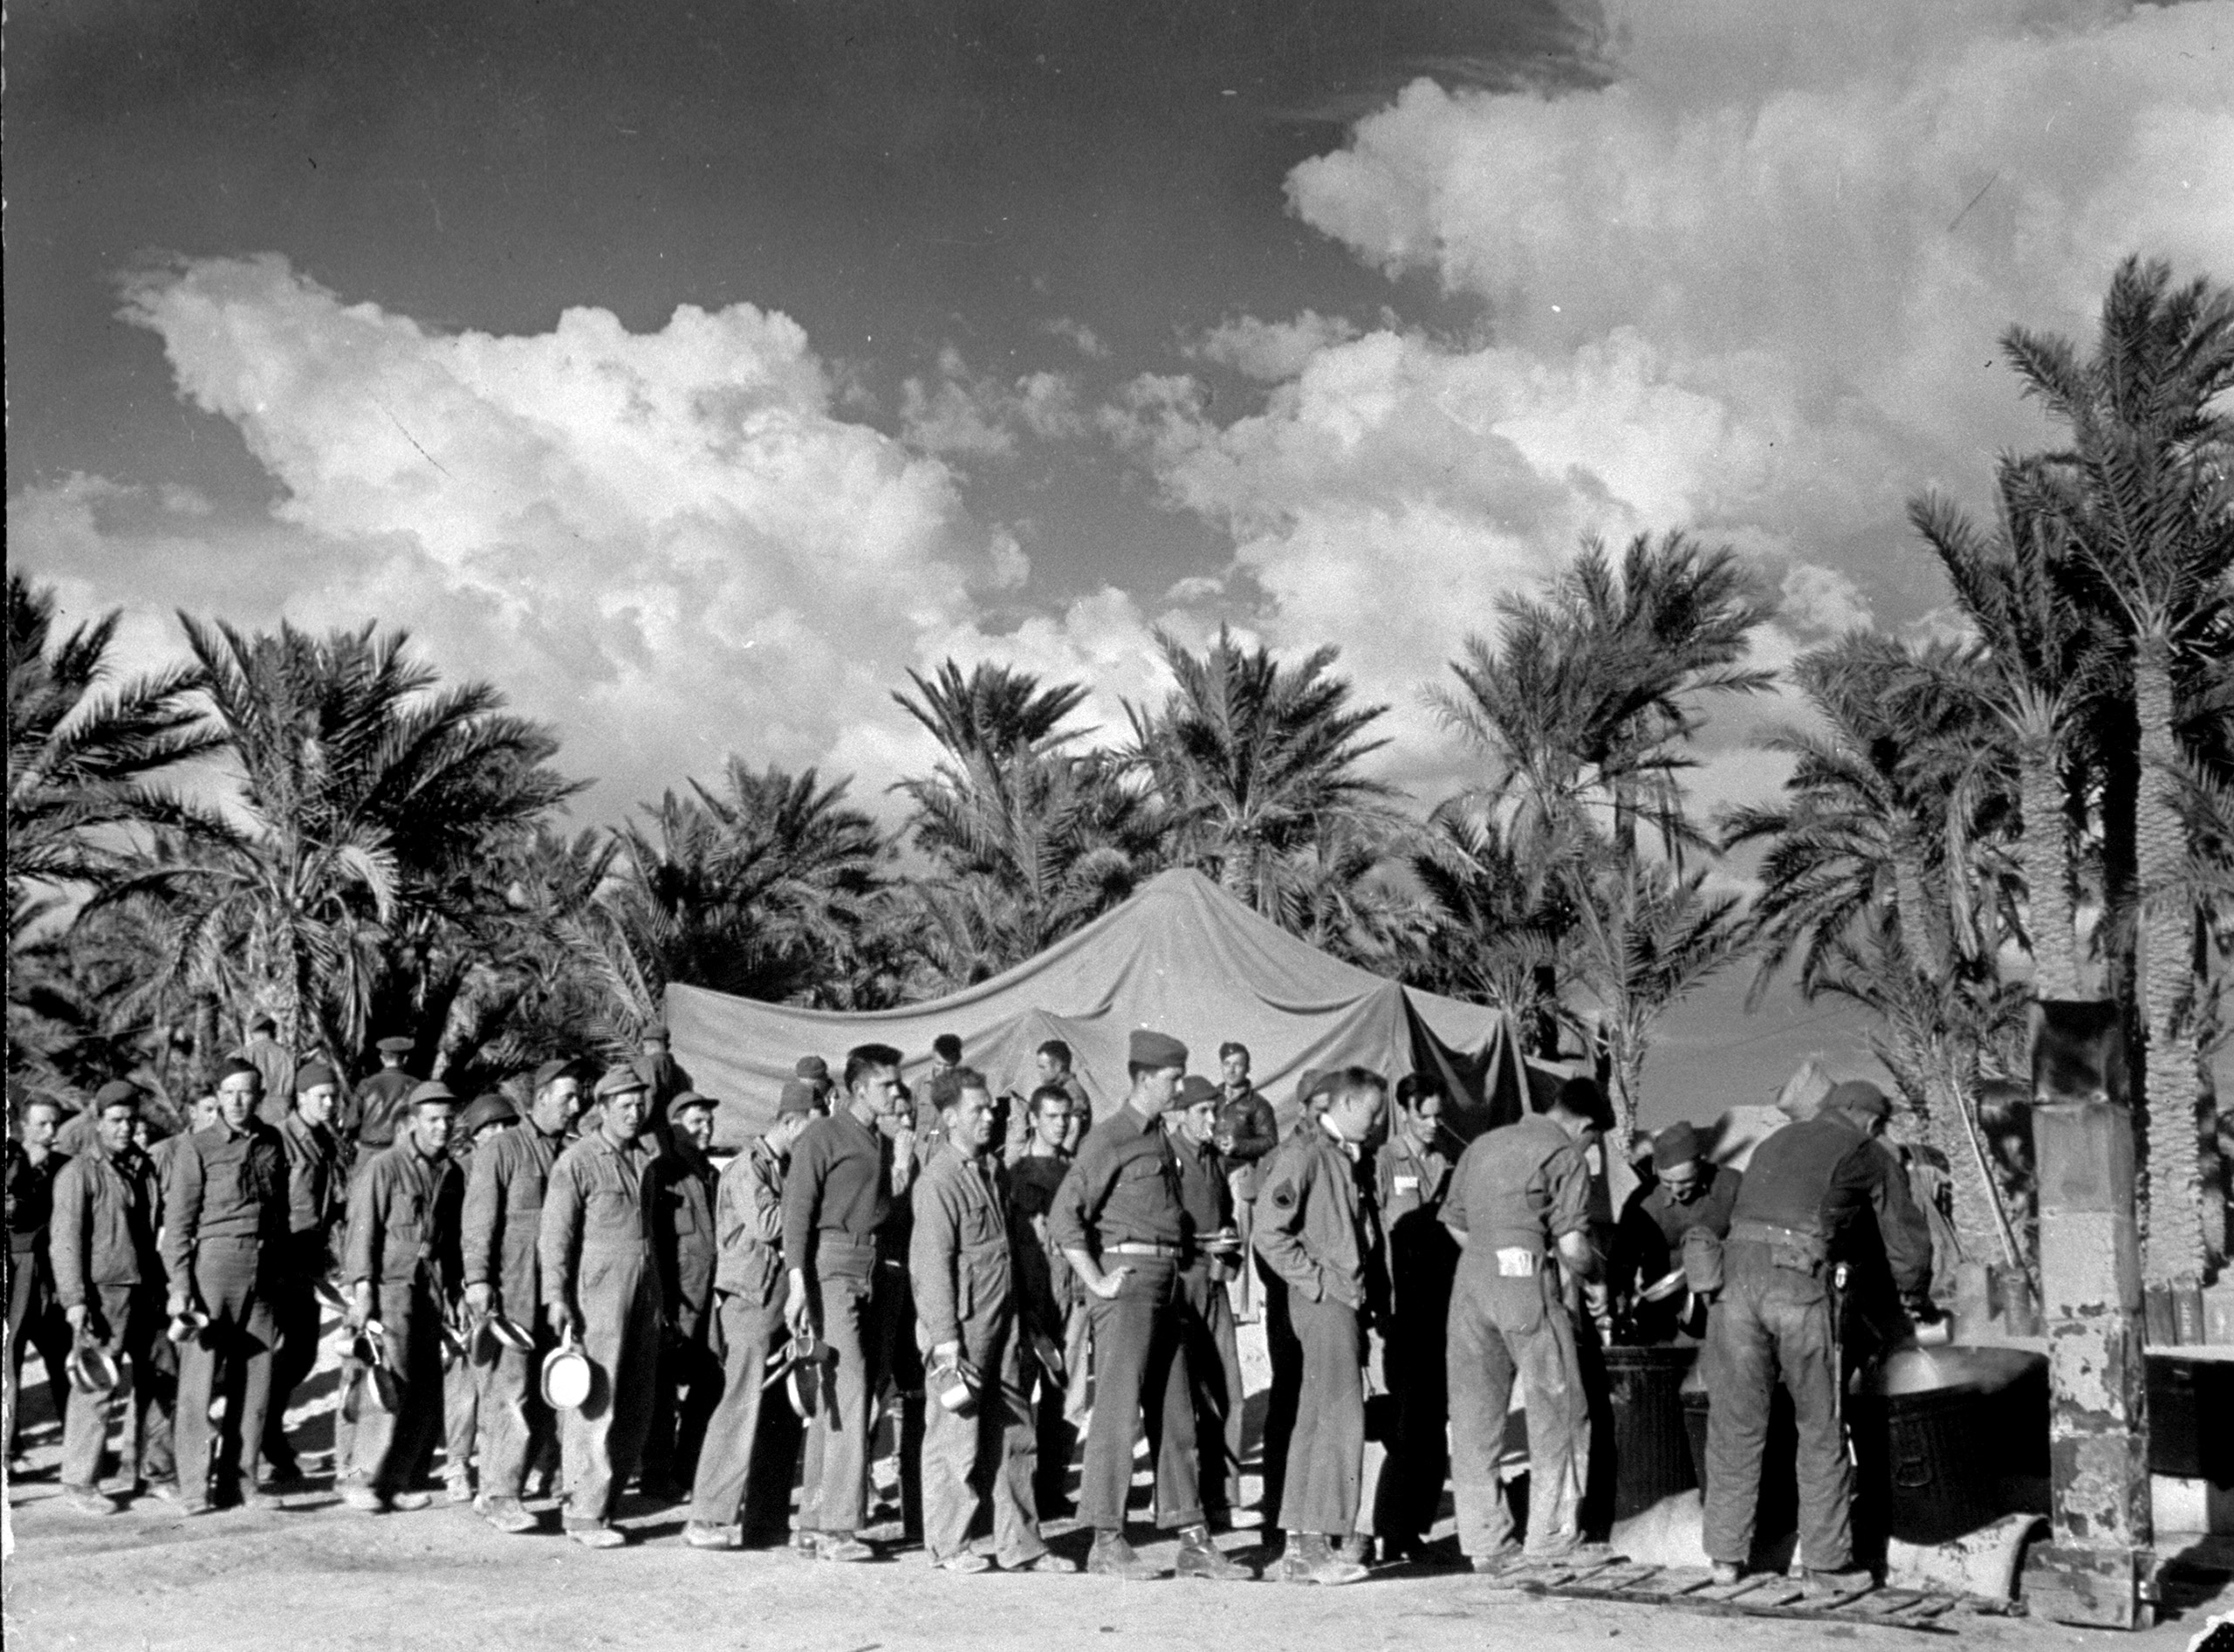 U.S. 12th Air Force ground crew and pilots after completing bombing mission, lined up with their mess kits, waiting to get food from large cooking pots at the right of the line, outside mess tent at their Sahara desert airdrome.